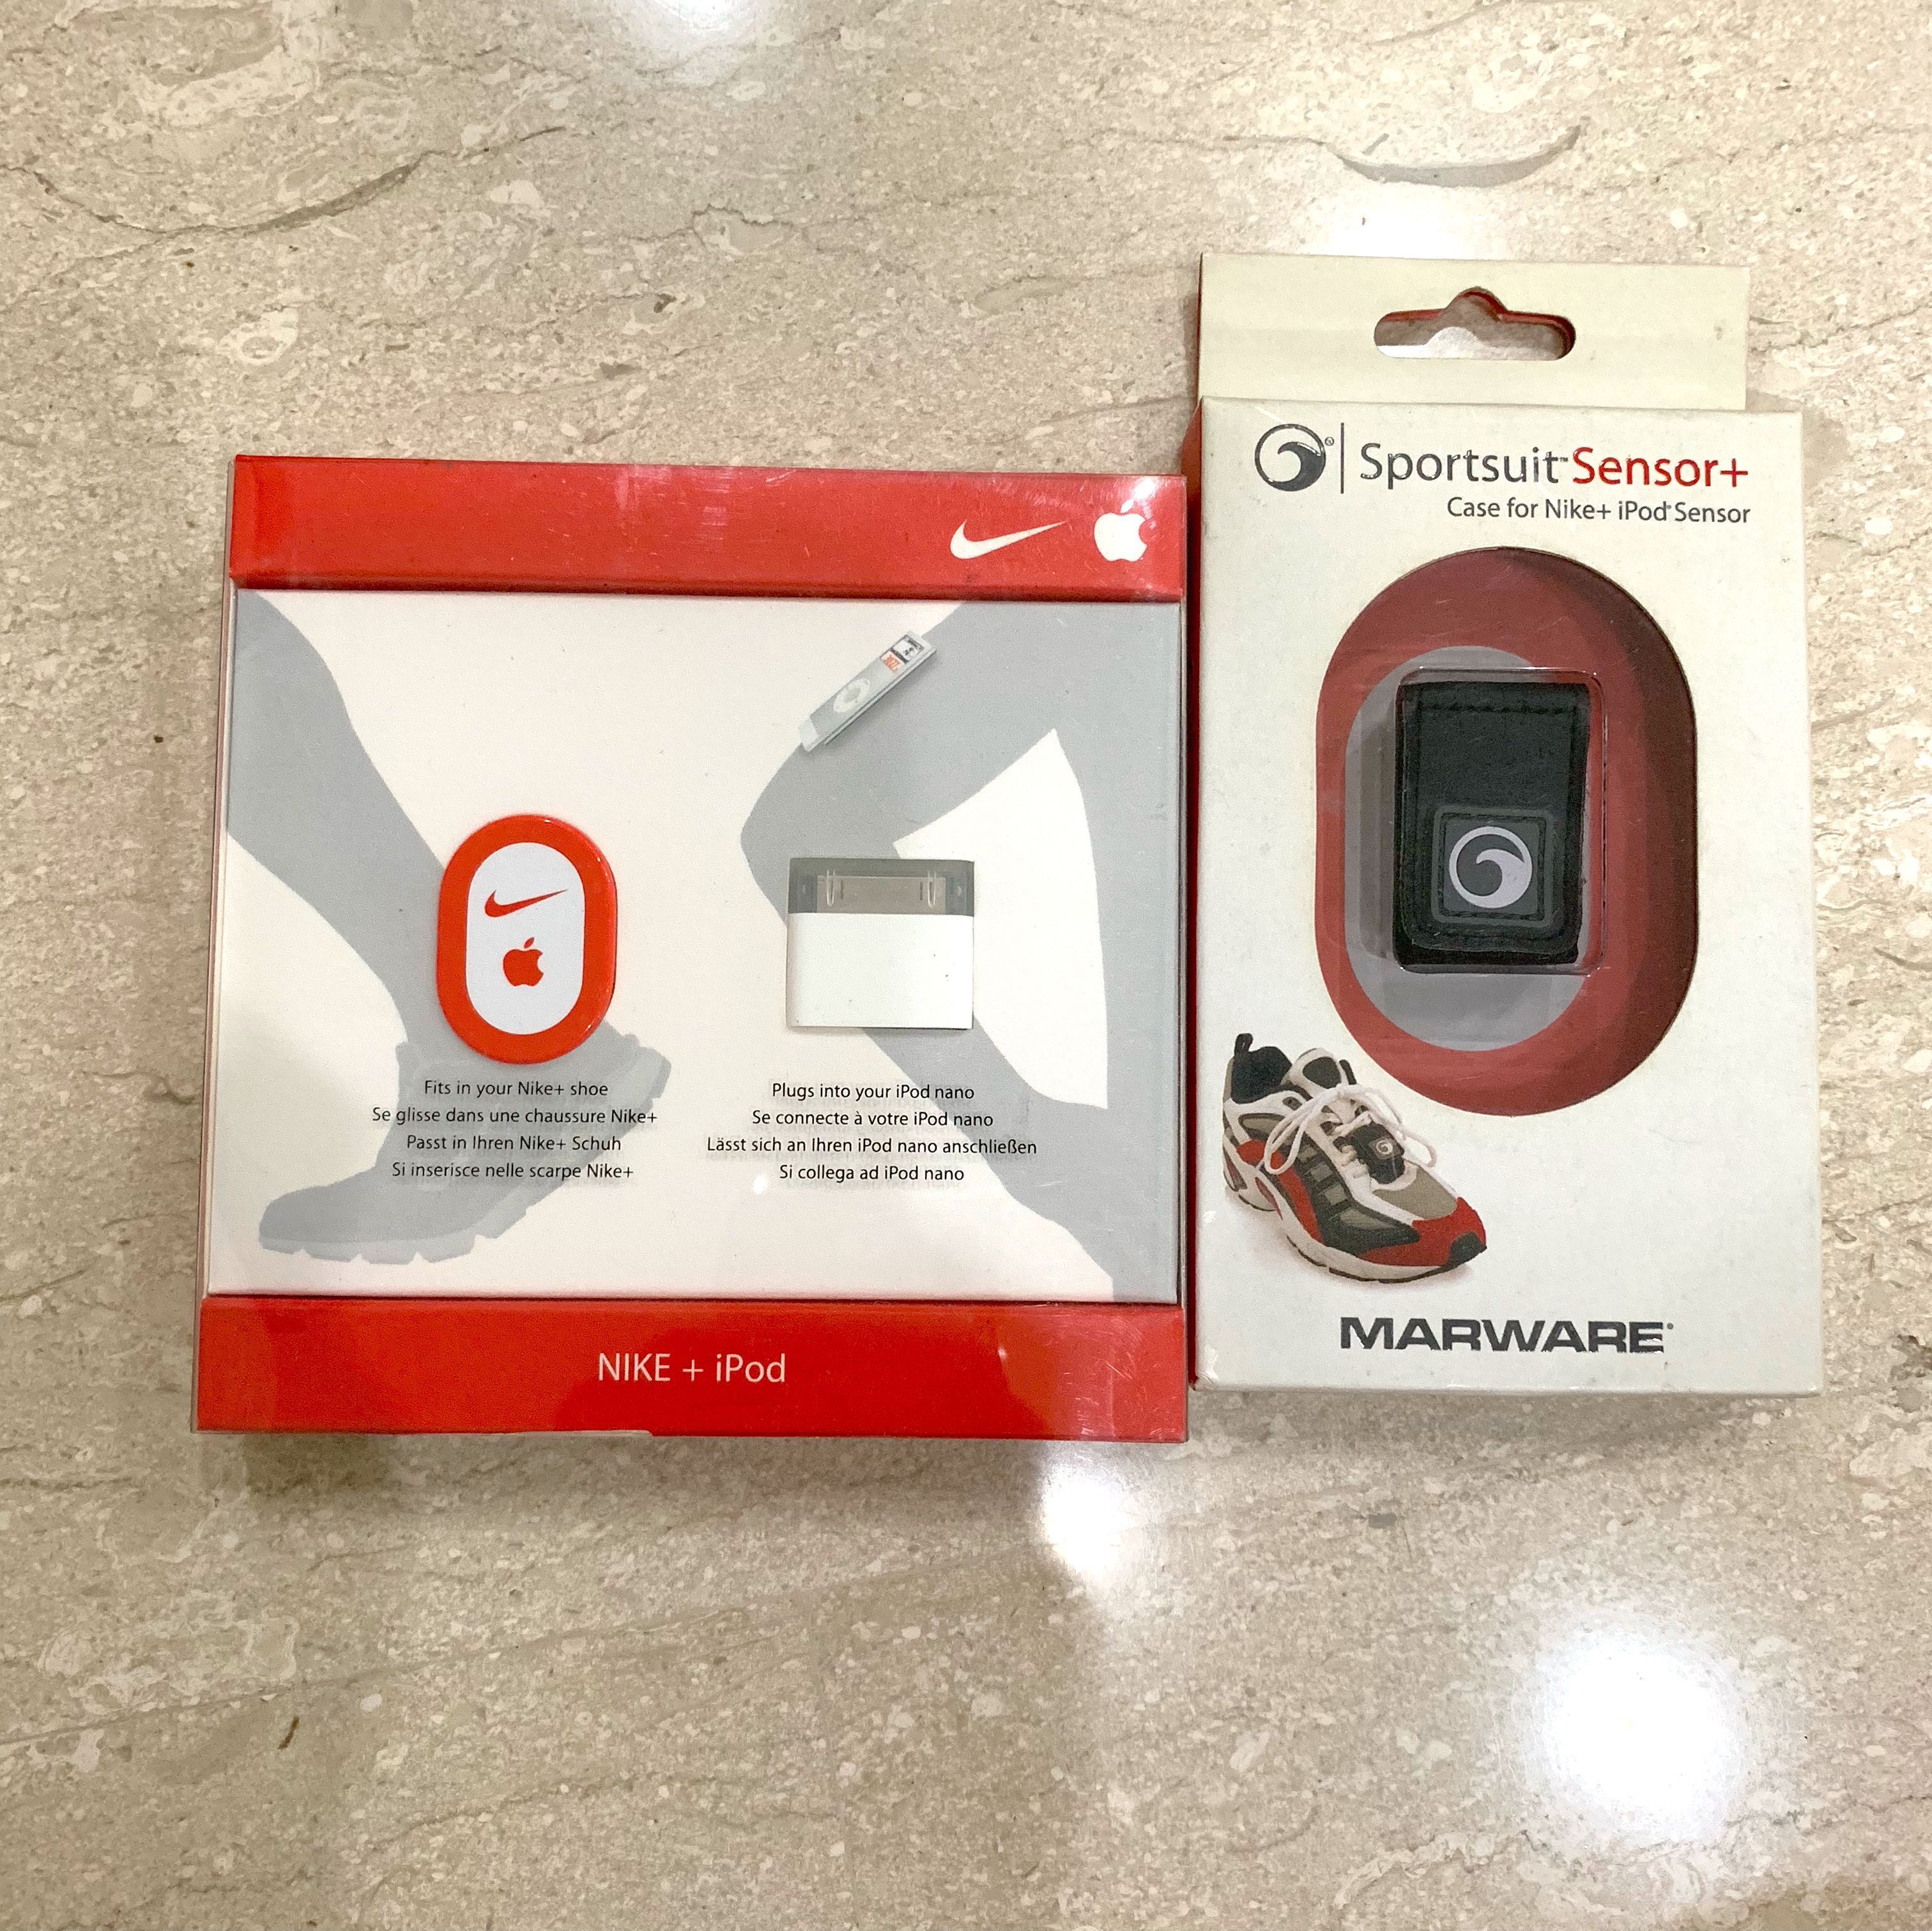 differently 9af90 879d8 Sport suit Sensor   Nike + iPod (with case) good for running, Music    Media, Music Accessories on Carousell